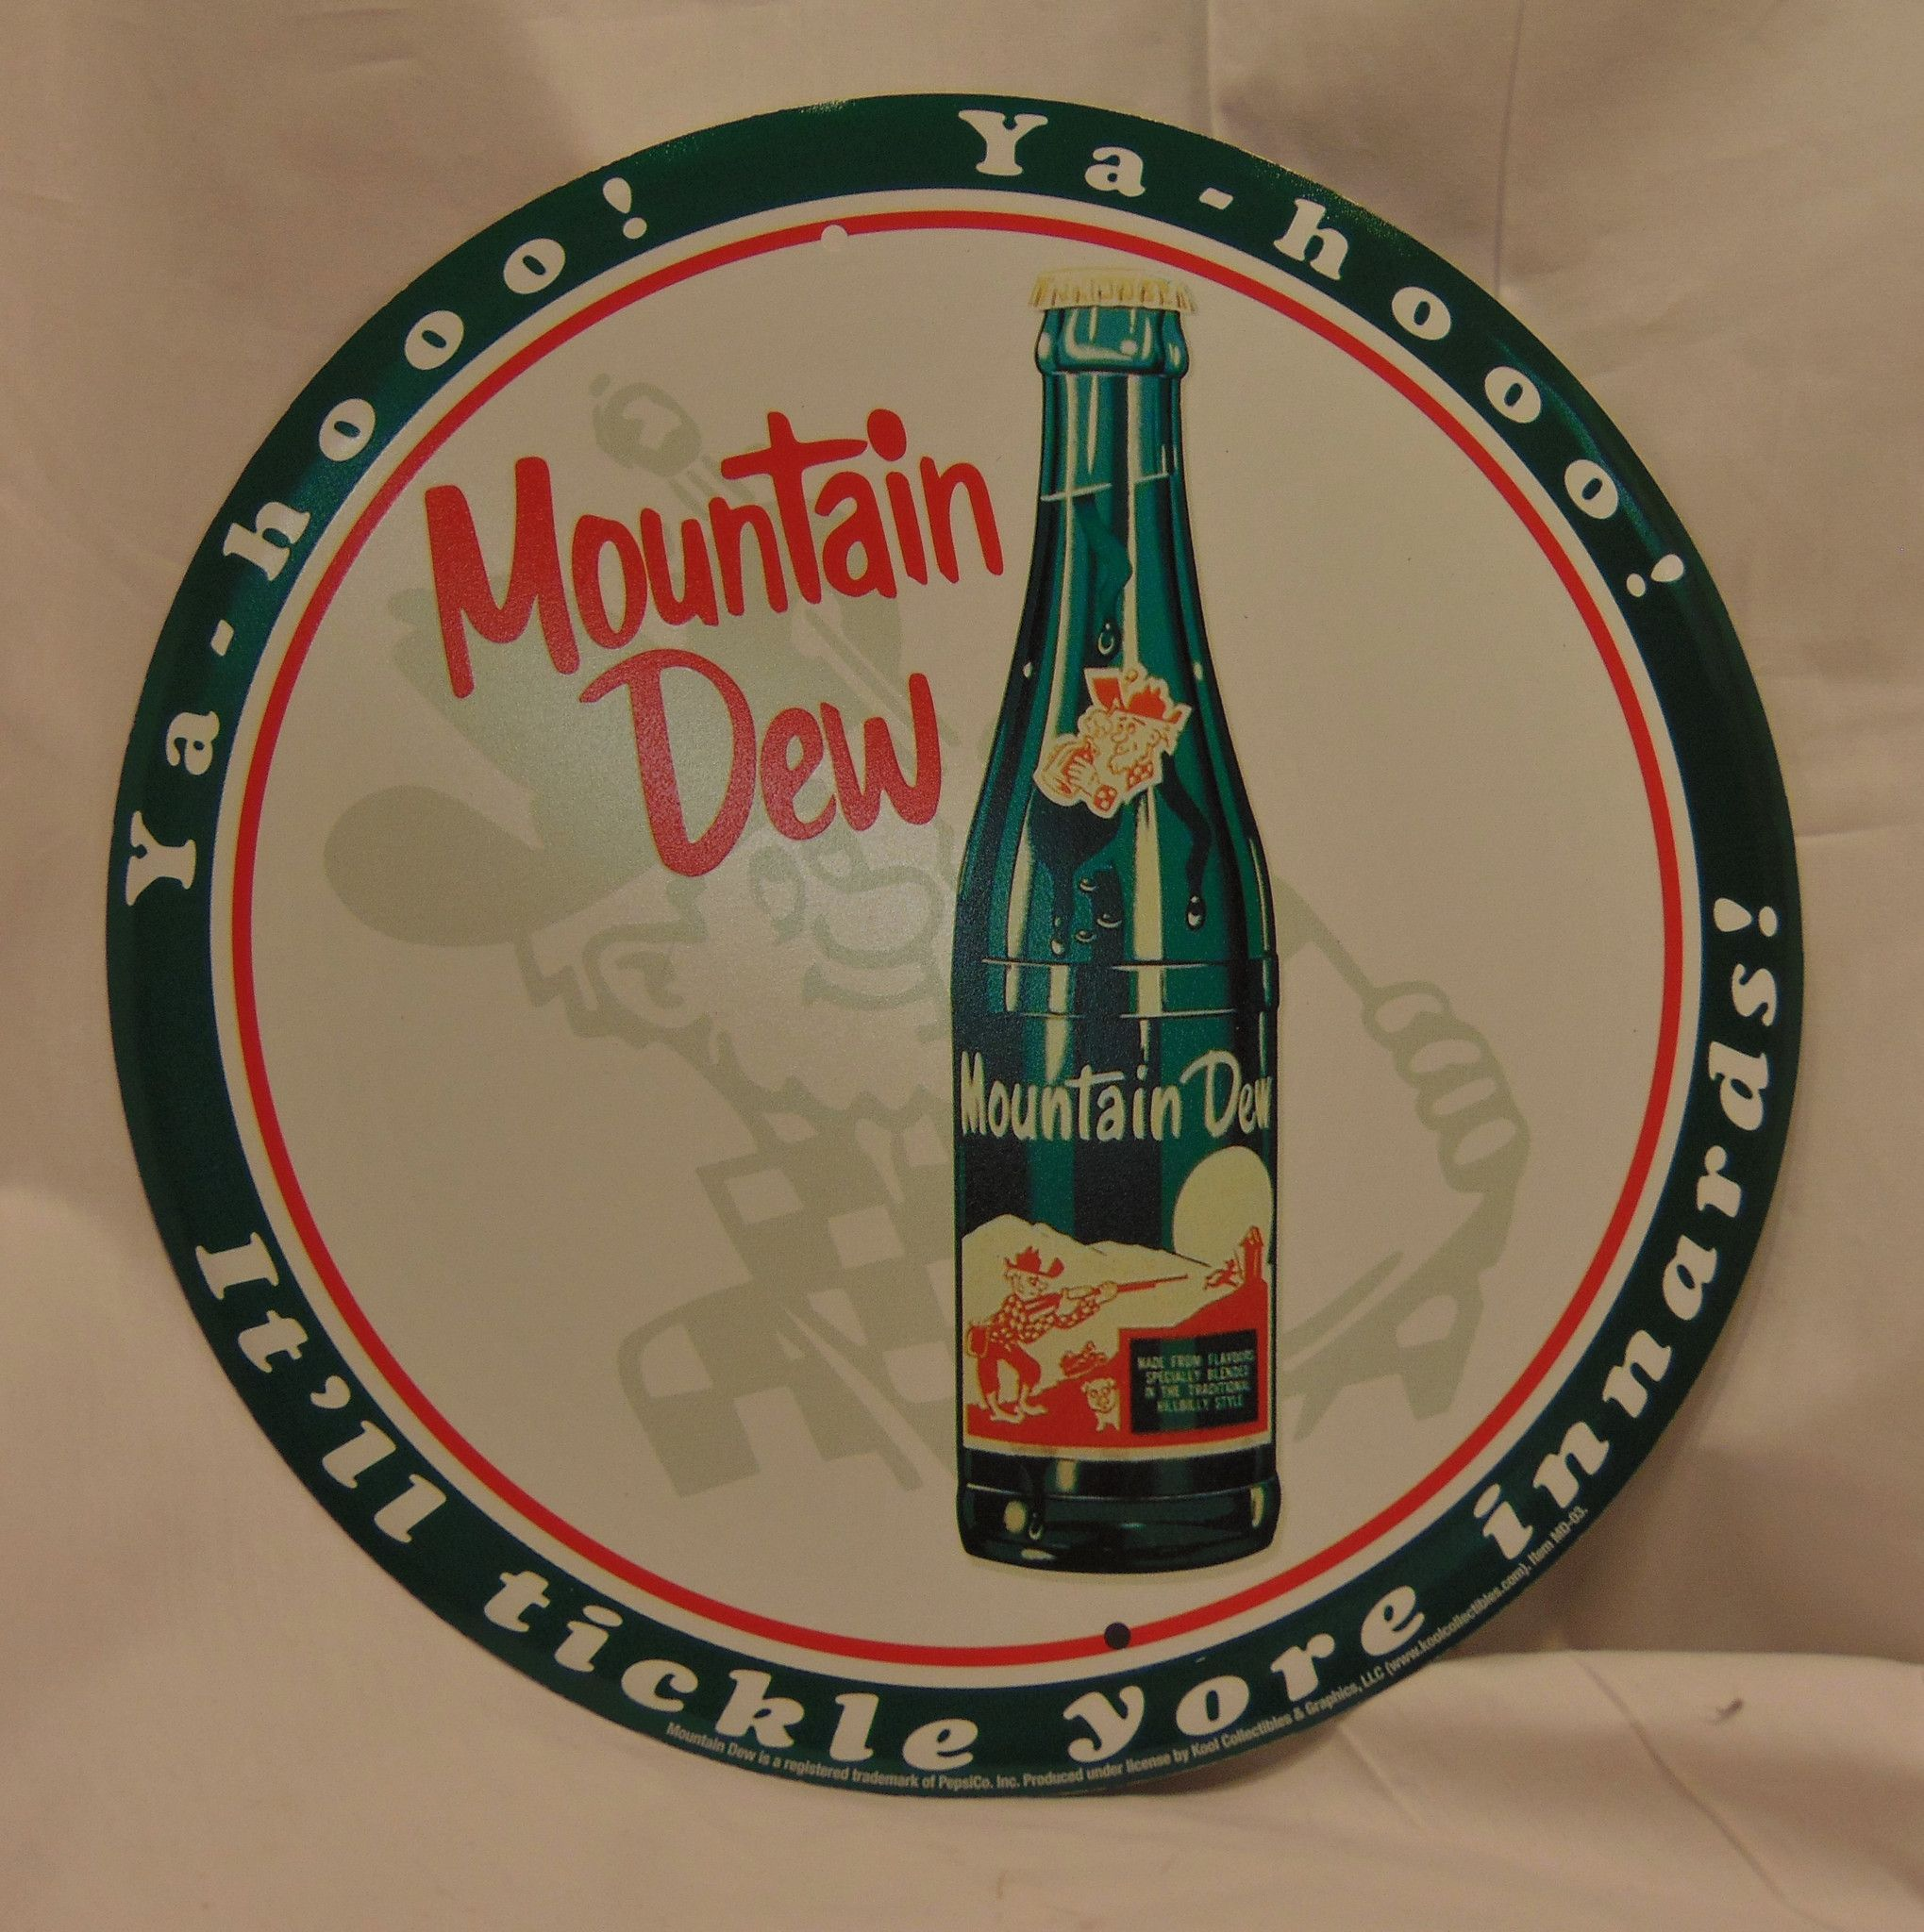 "Mountain Dew Tin Reproduction Advertising Sign Great for a Country or Farm-style Chic home or kitchen project! - Very sturdy tin with rusty brown edges and nice detail. - Measures 12"" across. - Holes"